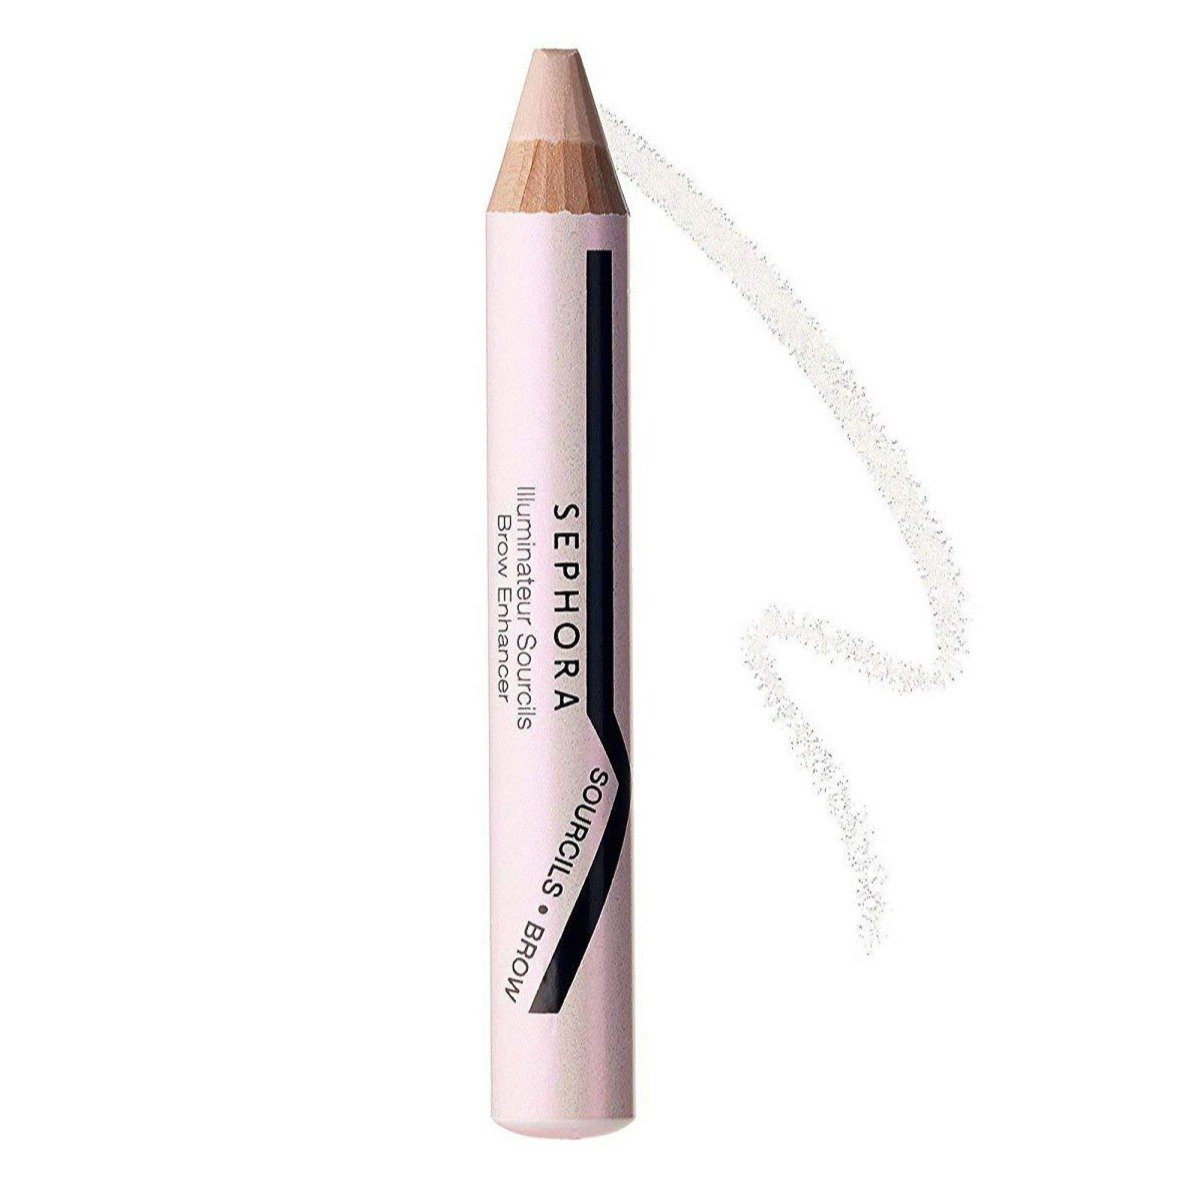 SEPHORA - BROW ENHANCER - Lemon and Twig